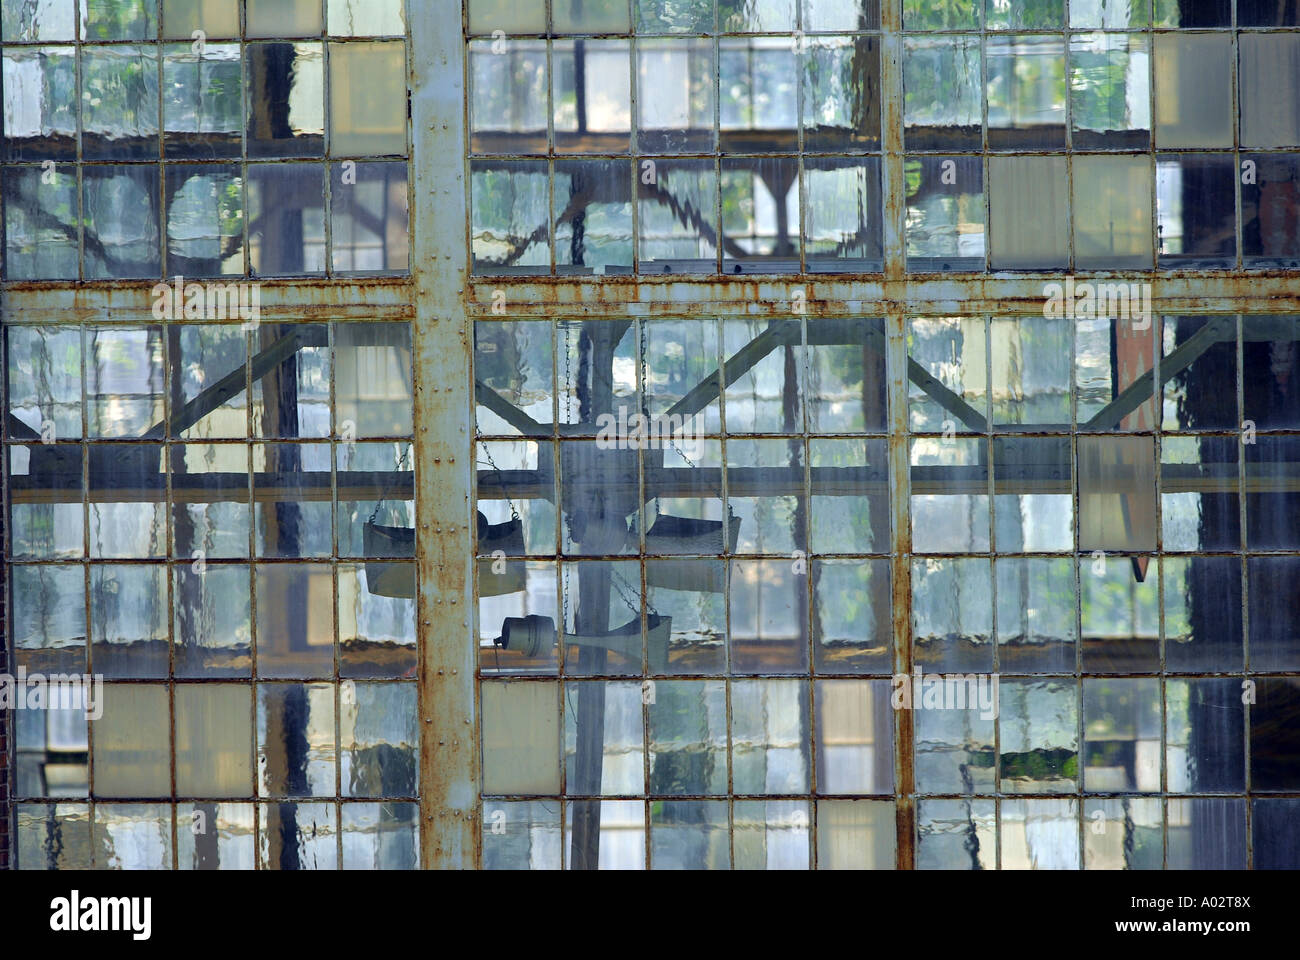 Abstract Industrial Window Panes Stock Photos & Abstract Industrial ...